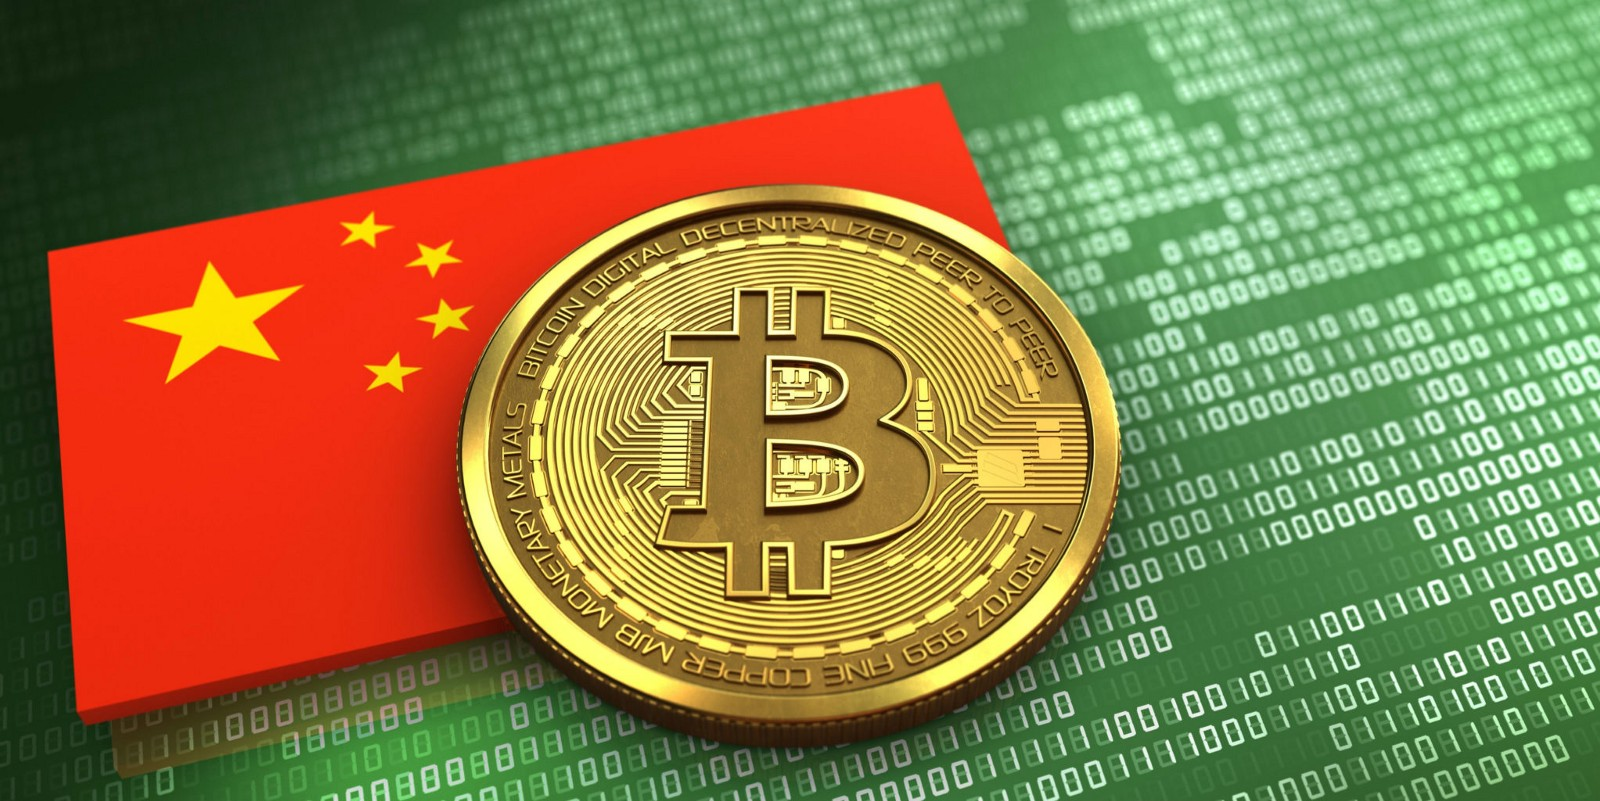 Aftermath Of The Down Chinese Currency Bitcoin Trading Falls Below 1 Global Totals